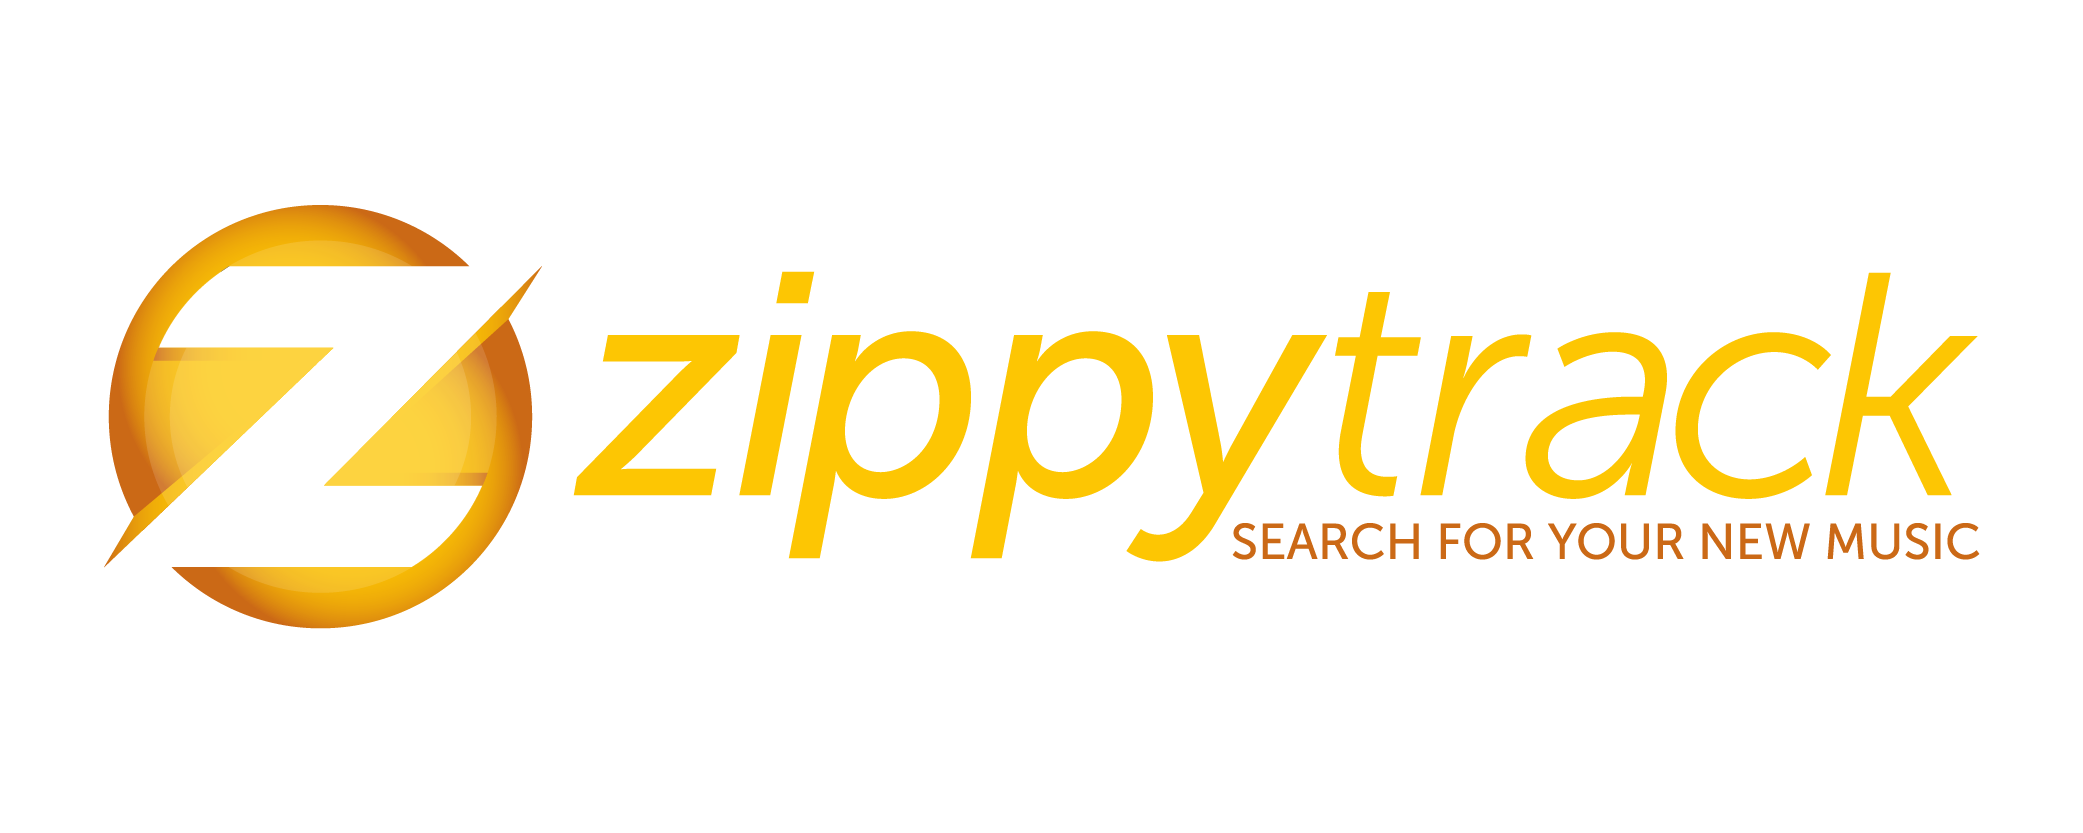 zippytrack download mp3 music search